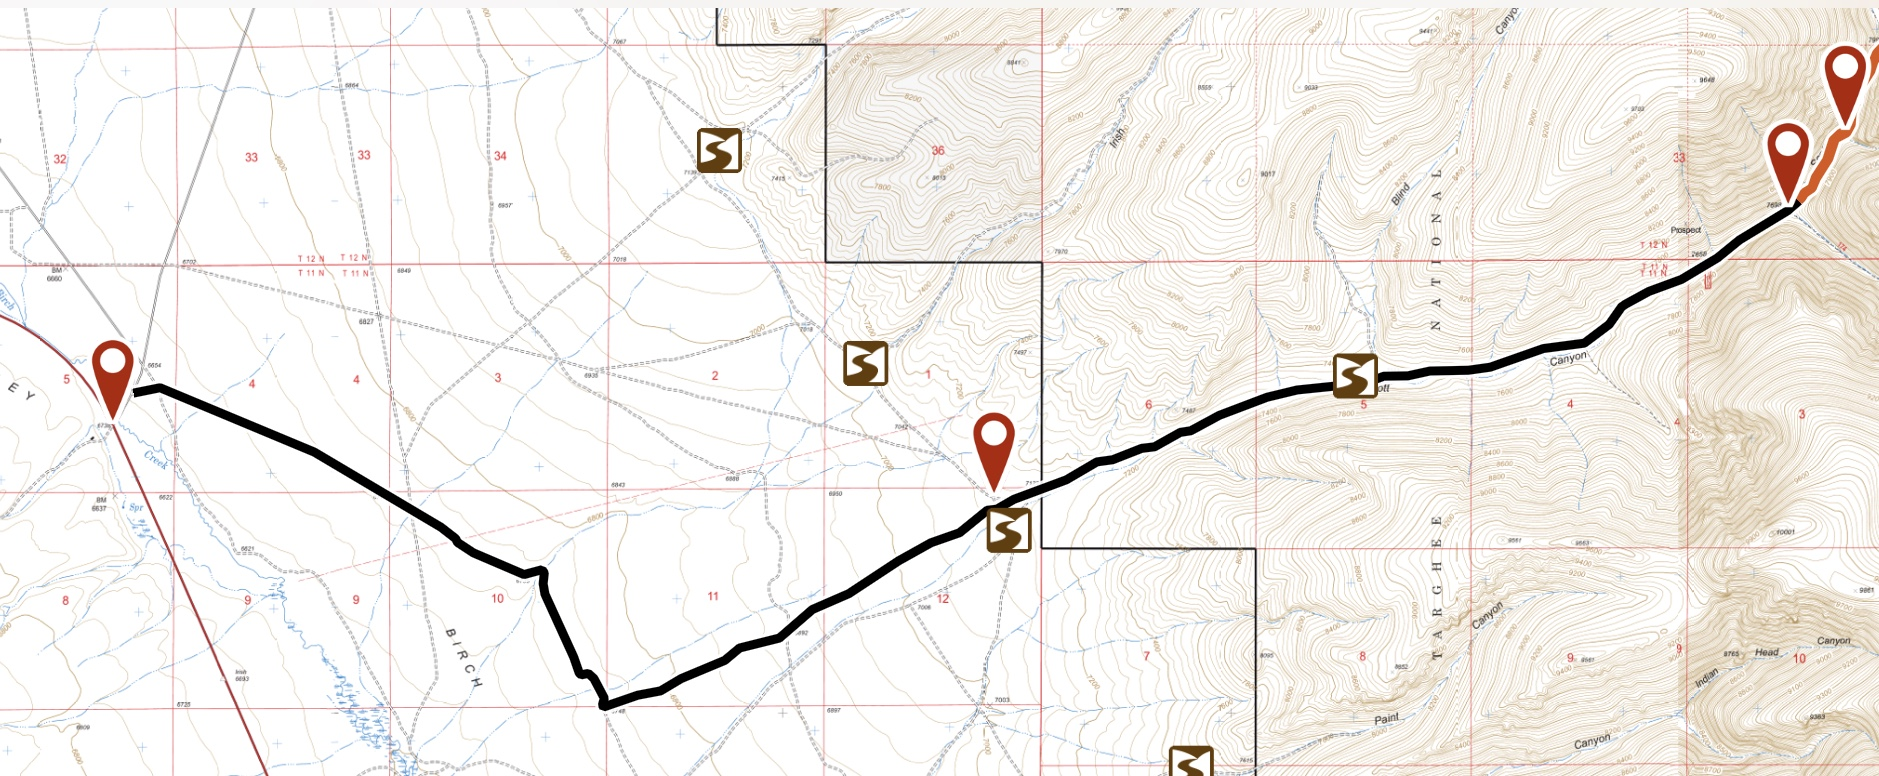 The access information in the book is still good. However, the route shown on this map was signed by the Forest Service amd is a more direct route. This route is 9.0 miles long and gains over a thousand feet.